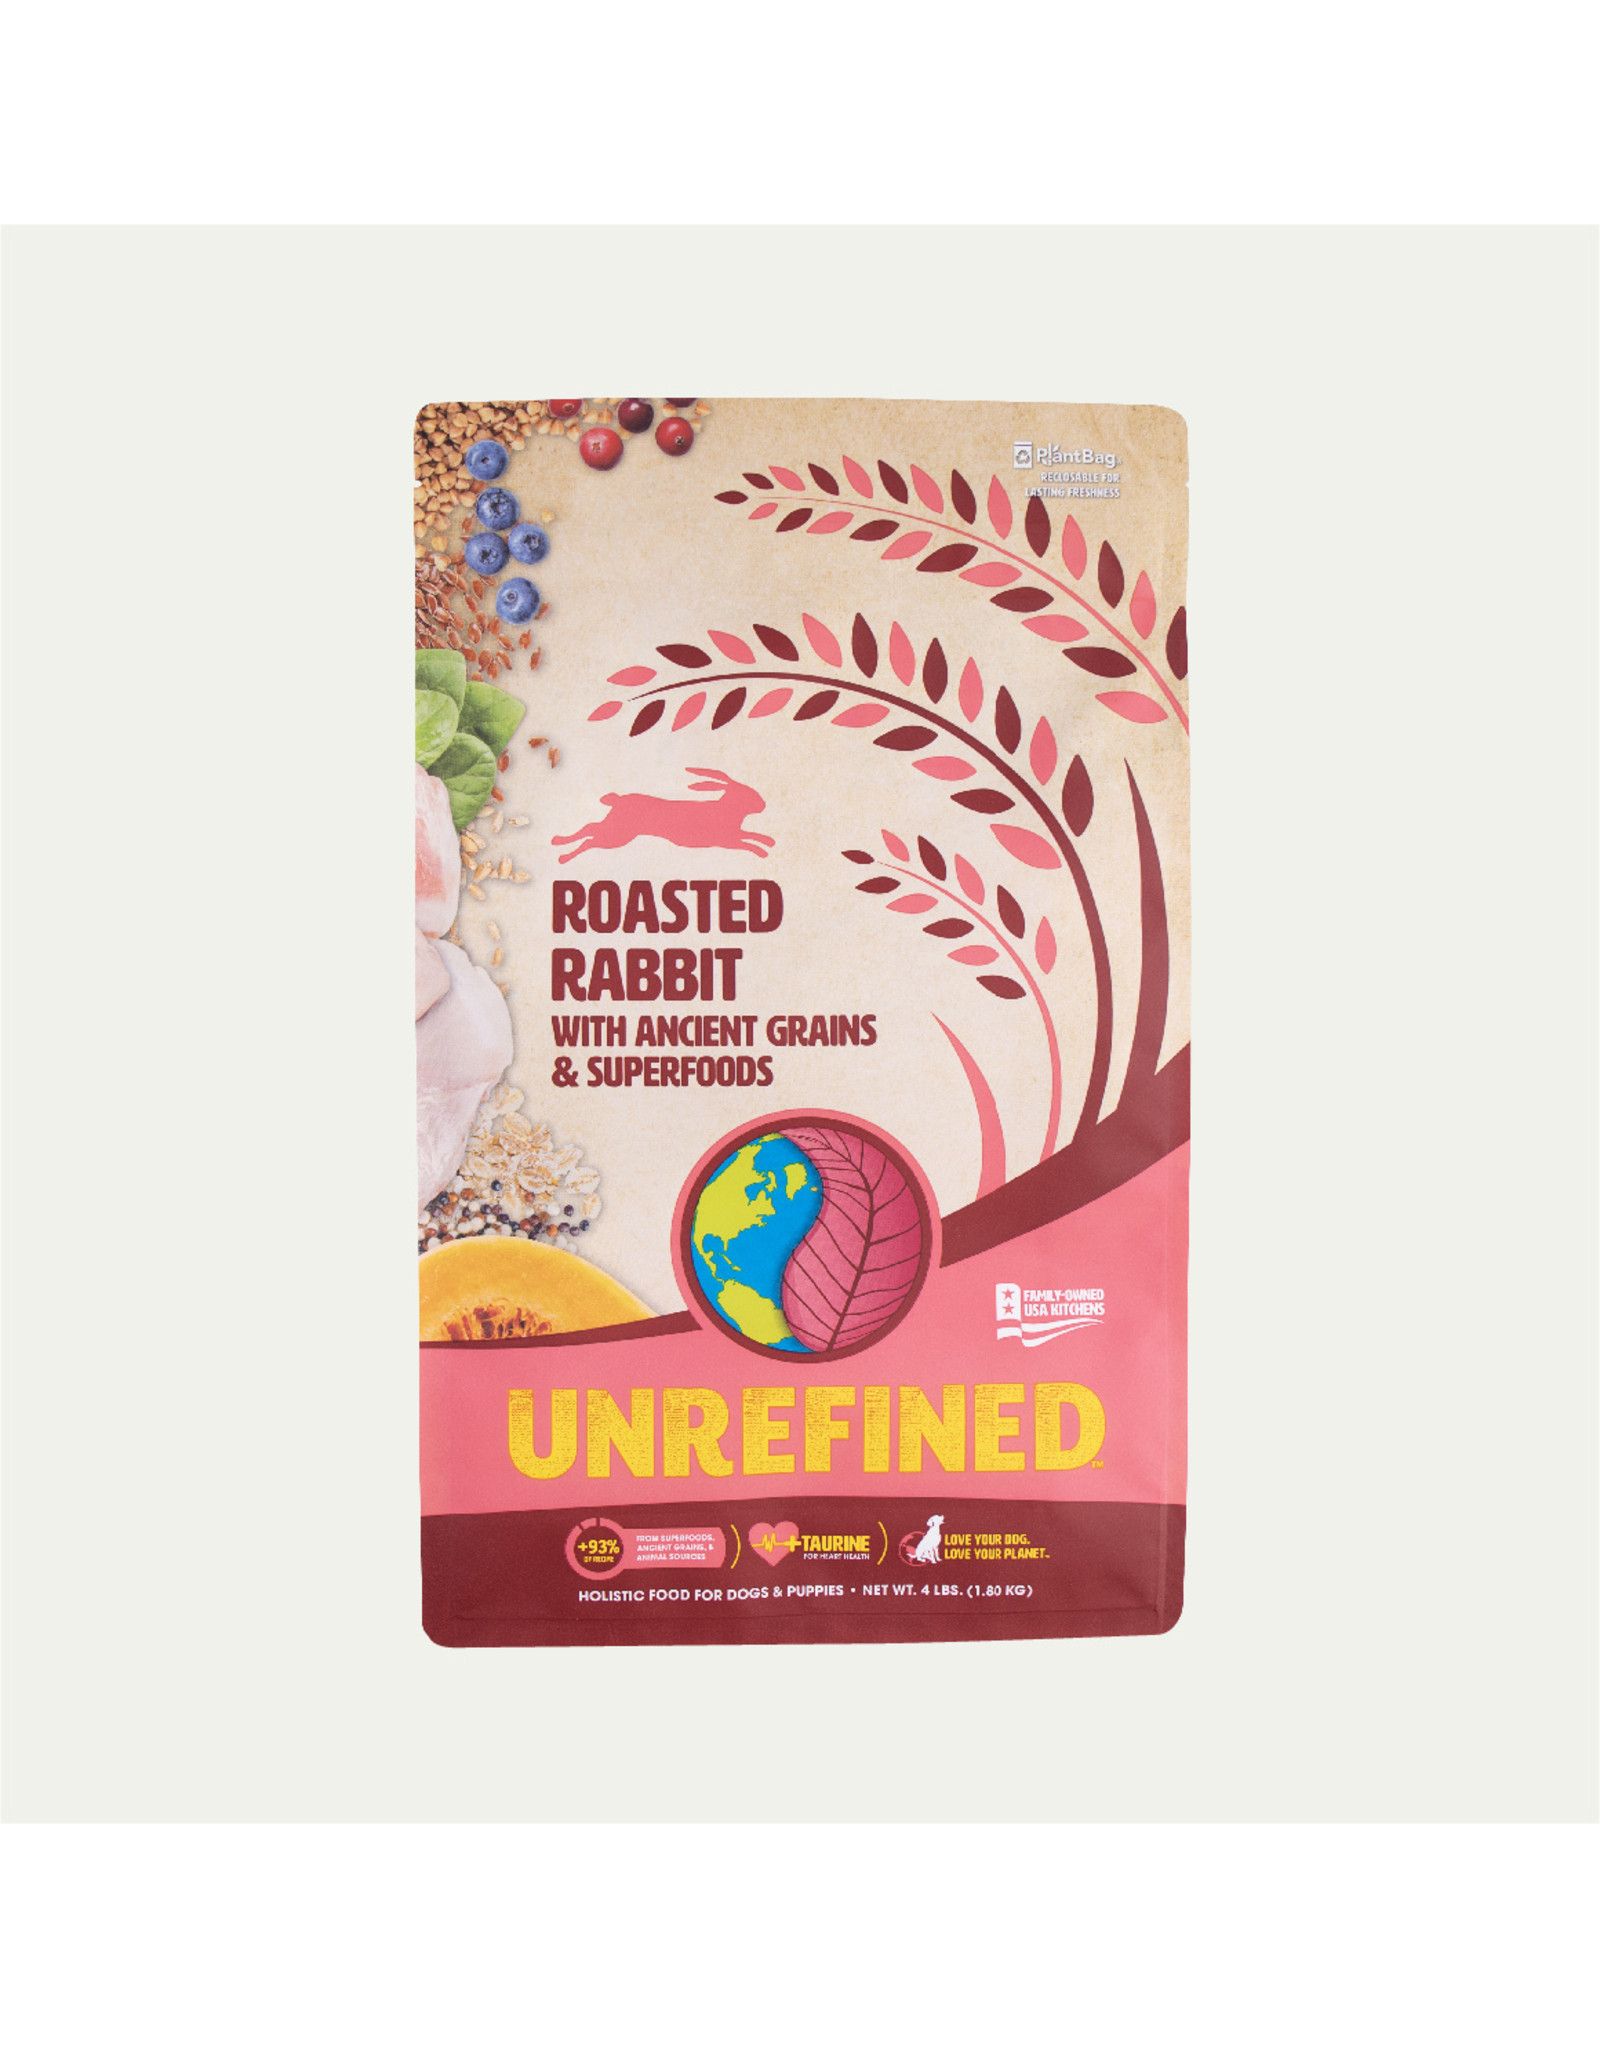 Earthborn Earthborn Holistic Dry Dog Food UNREFINED Roasted Rabbit with Ancient Grains and Superfoods Grain Inclusive